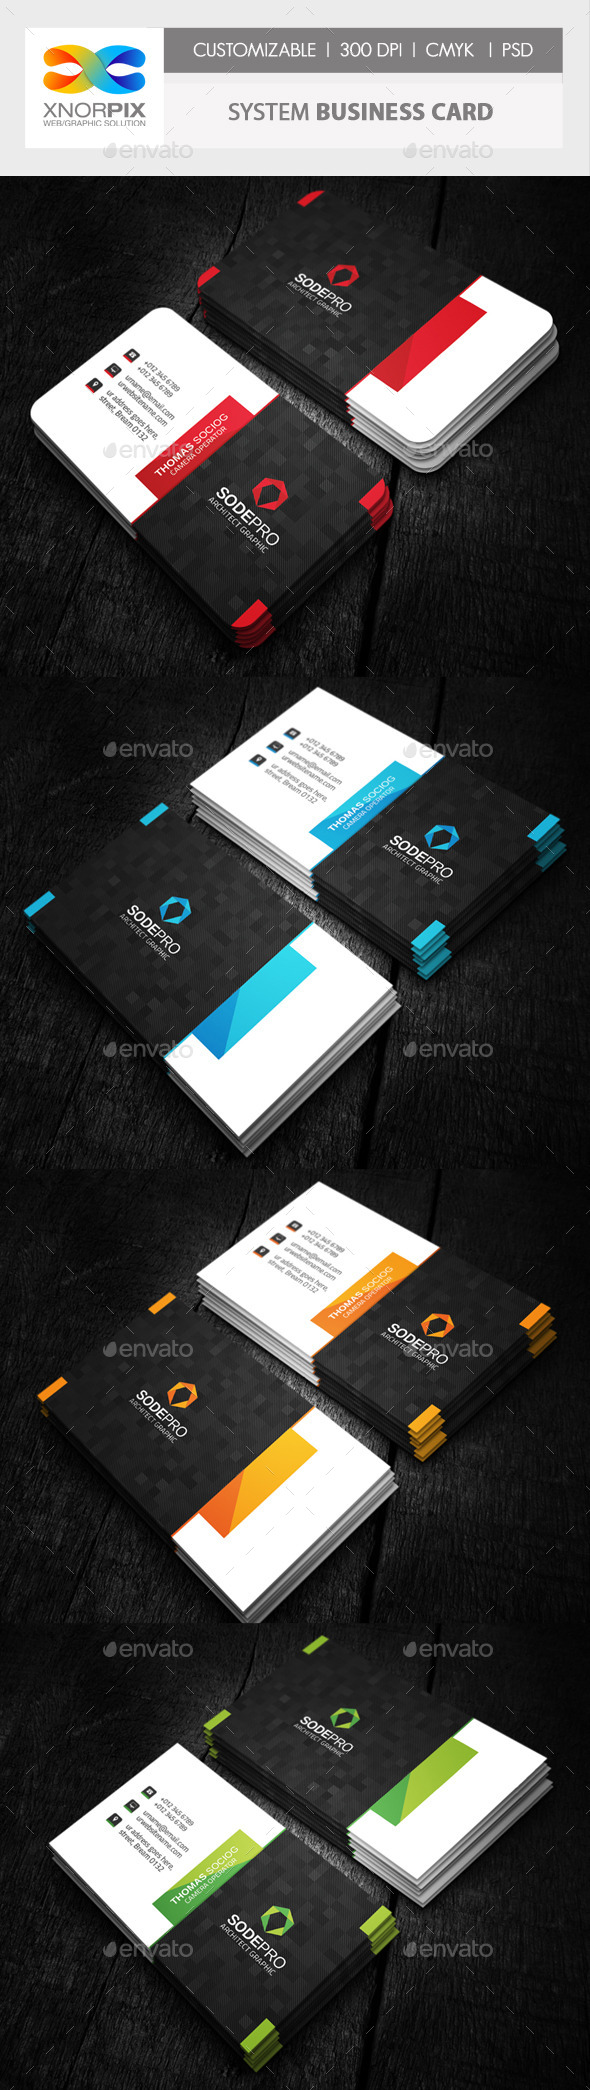 System Business Card - Corporate Business Cards